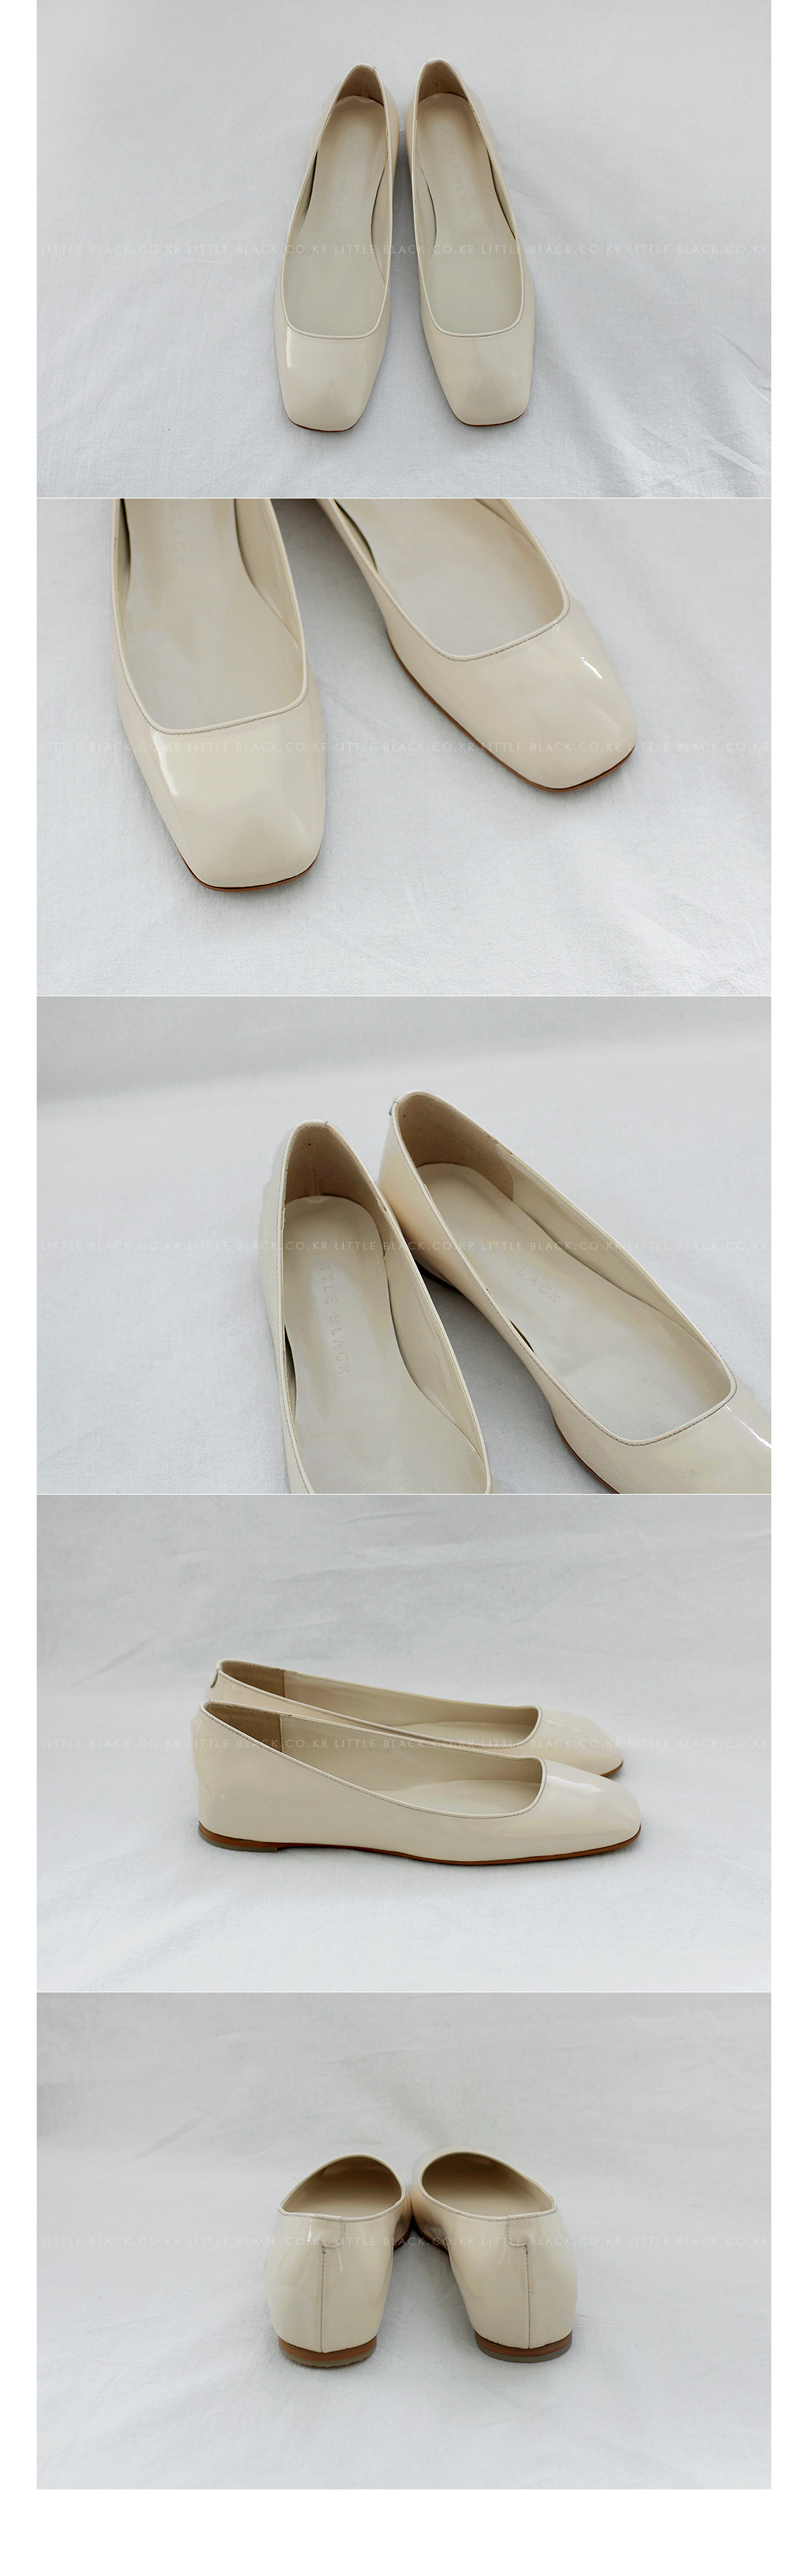 Square Toe Flat Shoes|